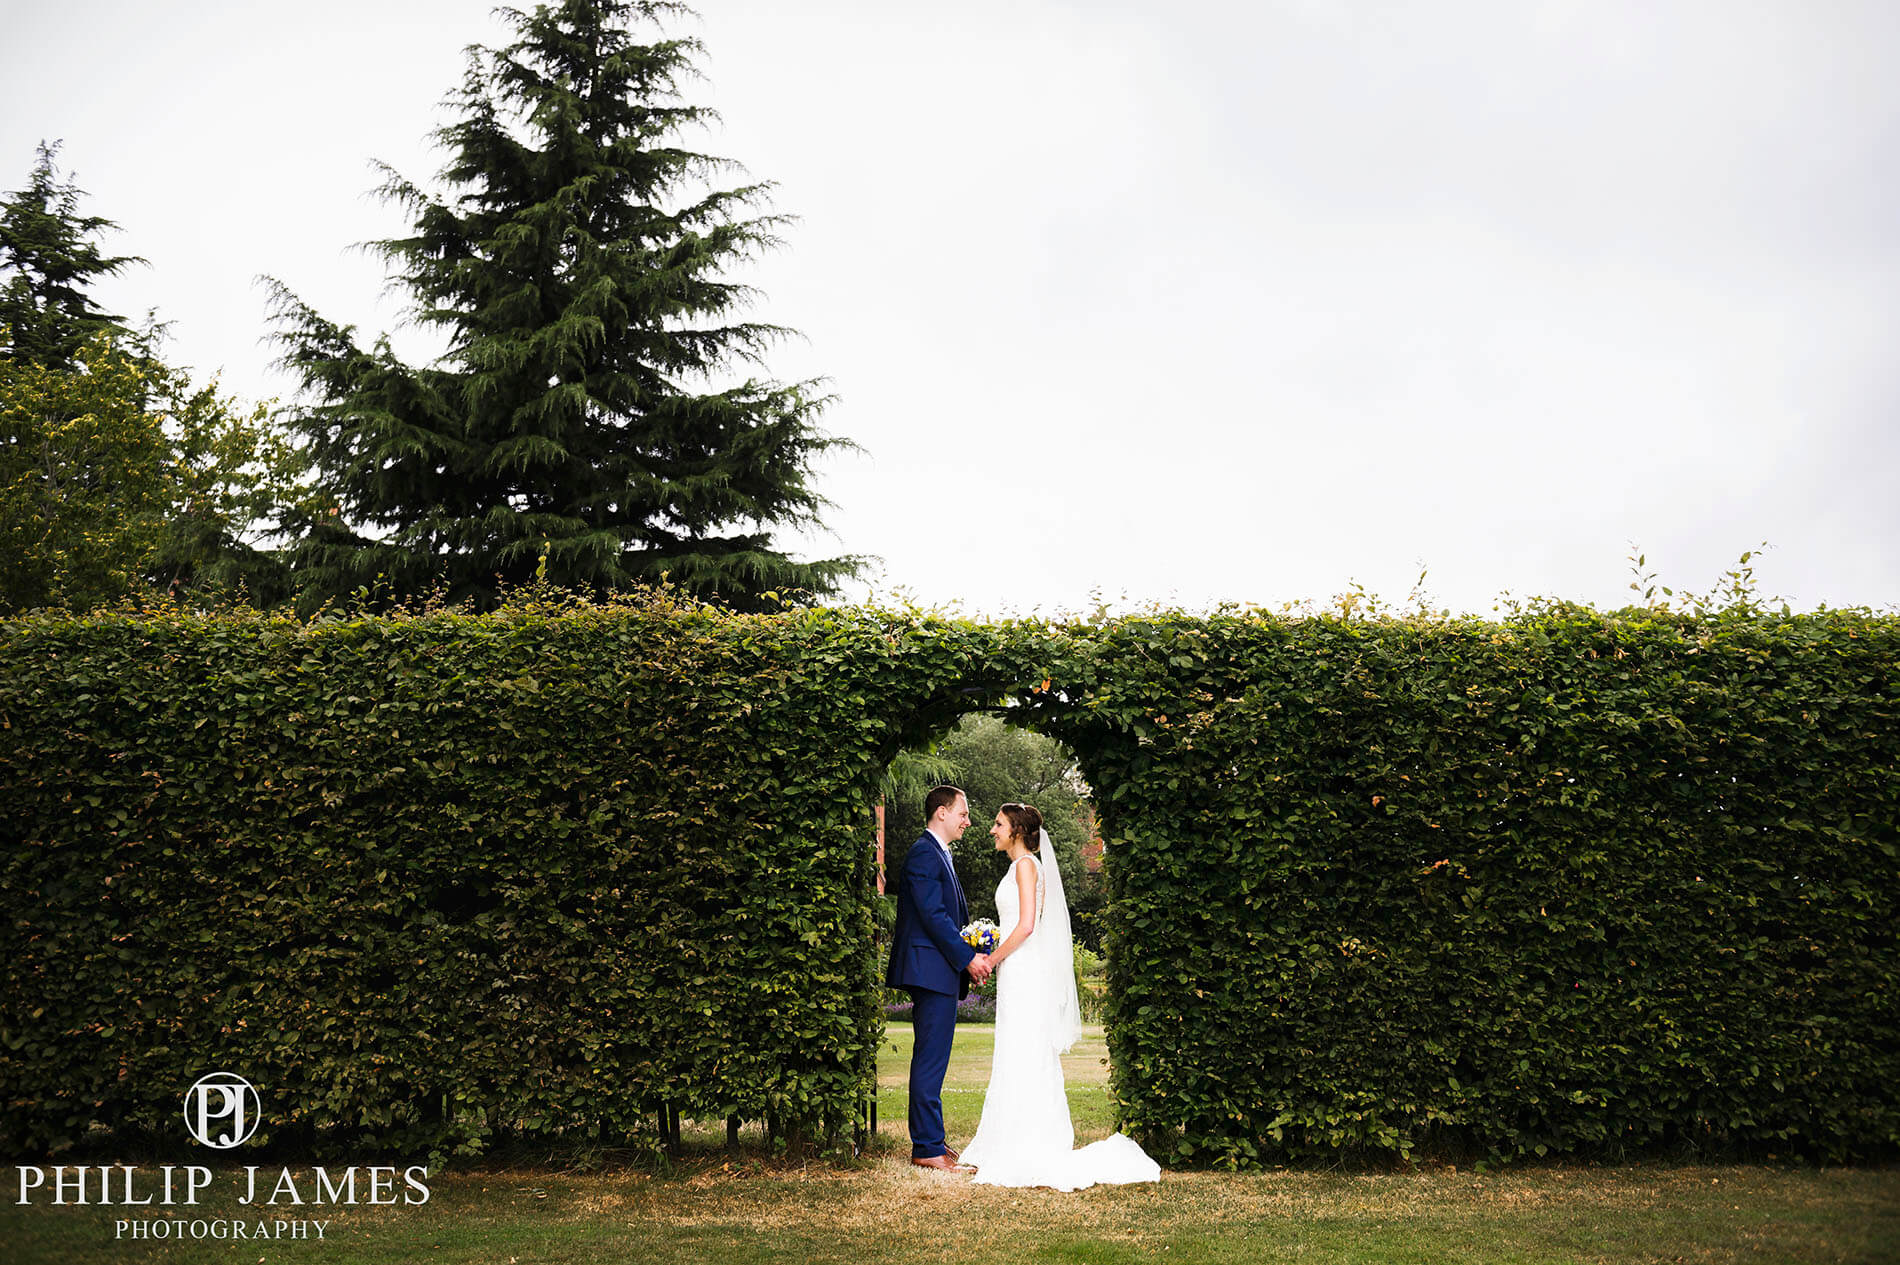 Birmingham Wedding Photographer - Philip James Photography based in Solihull (42 of 68)